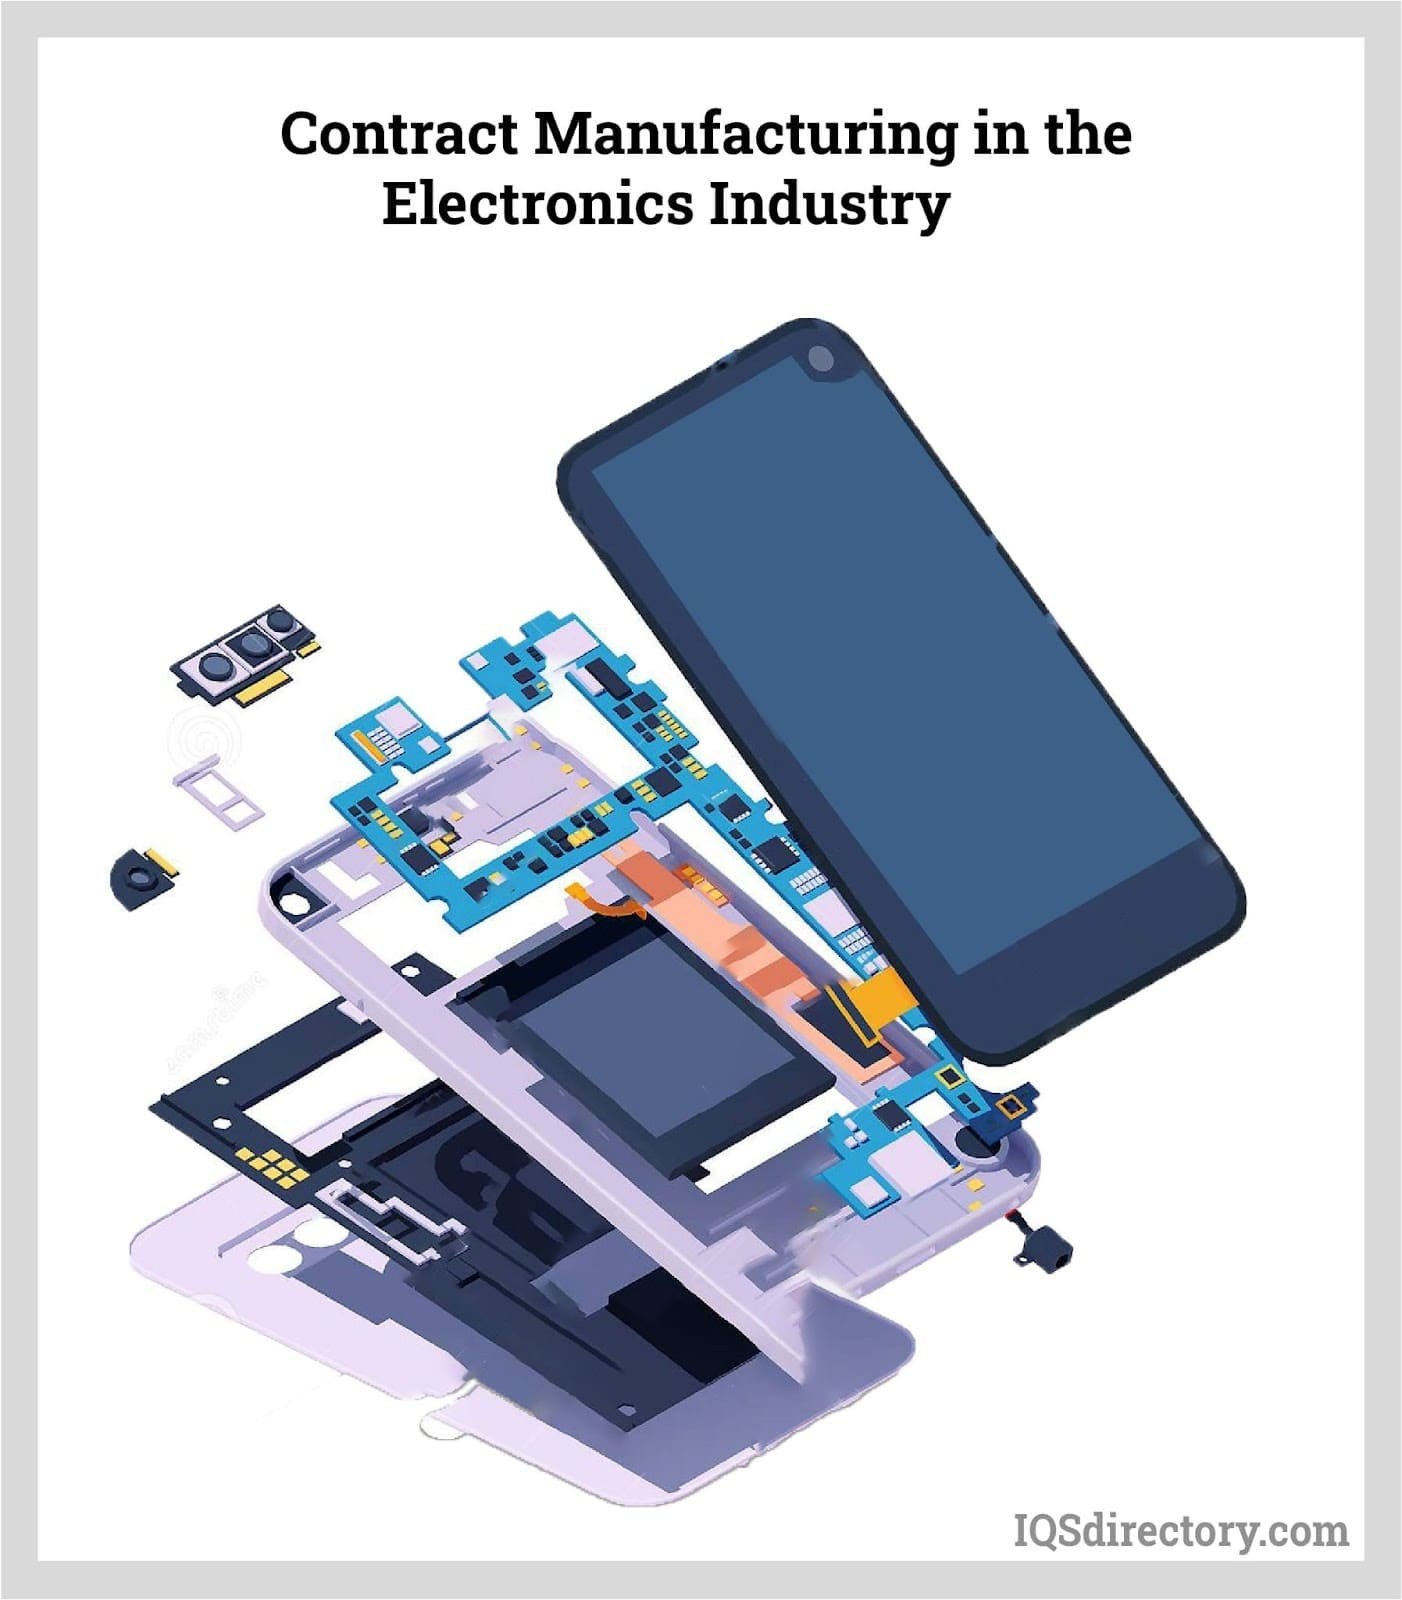 Contract Manufacturing in the Electronics Industry